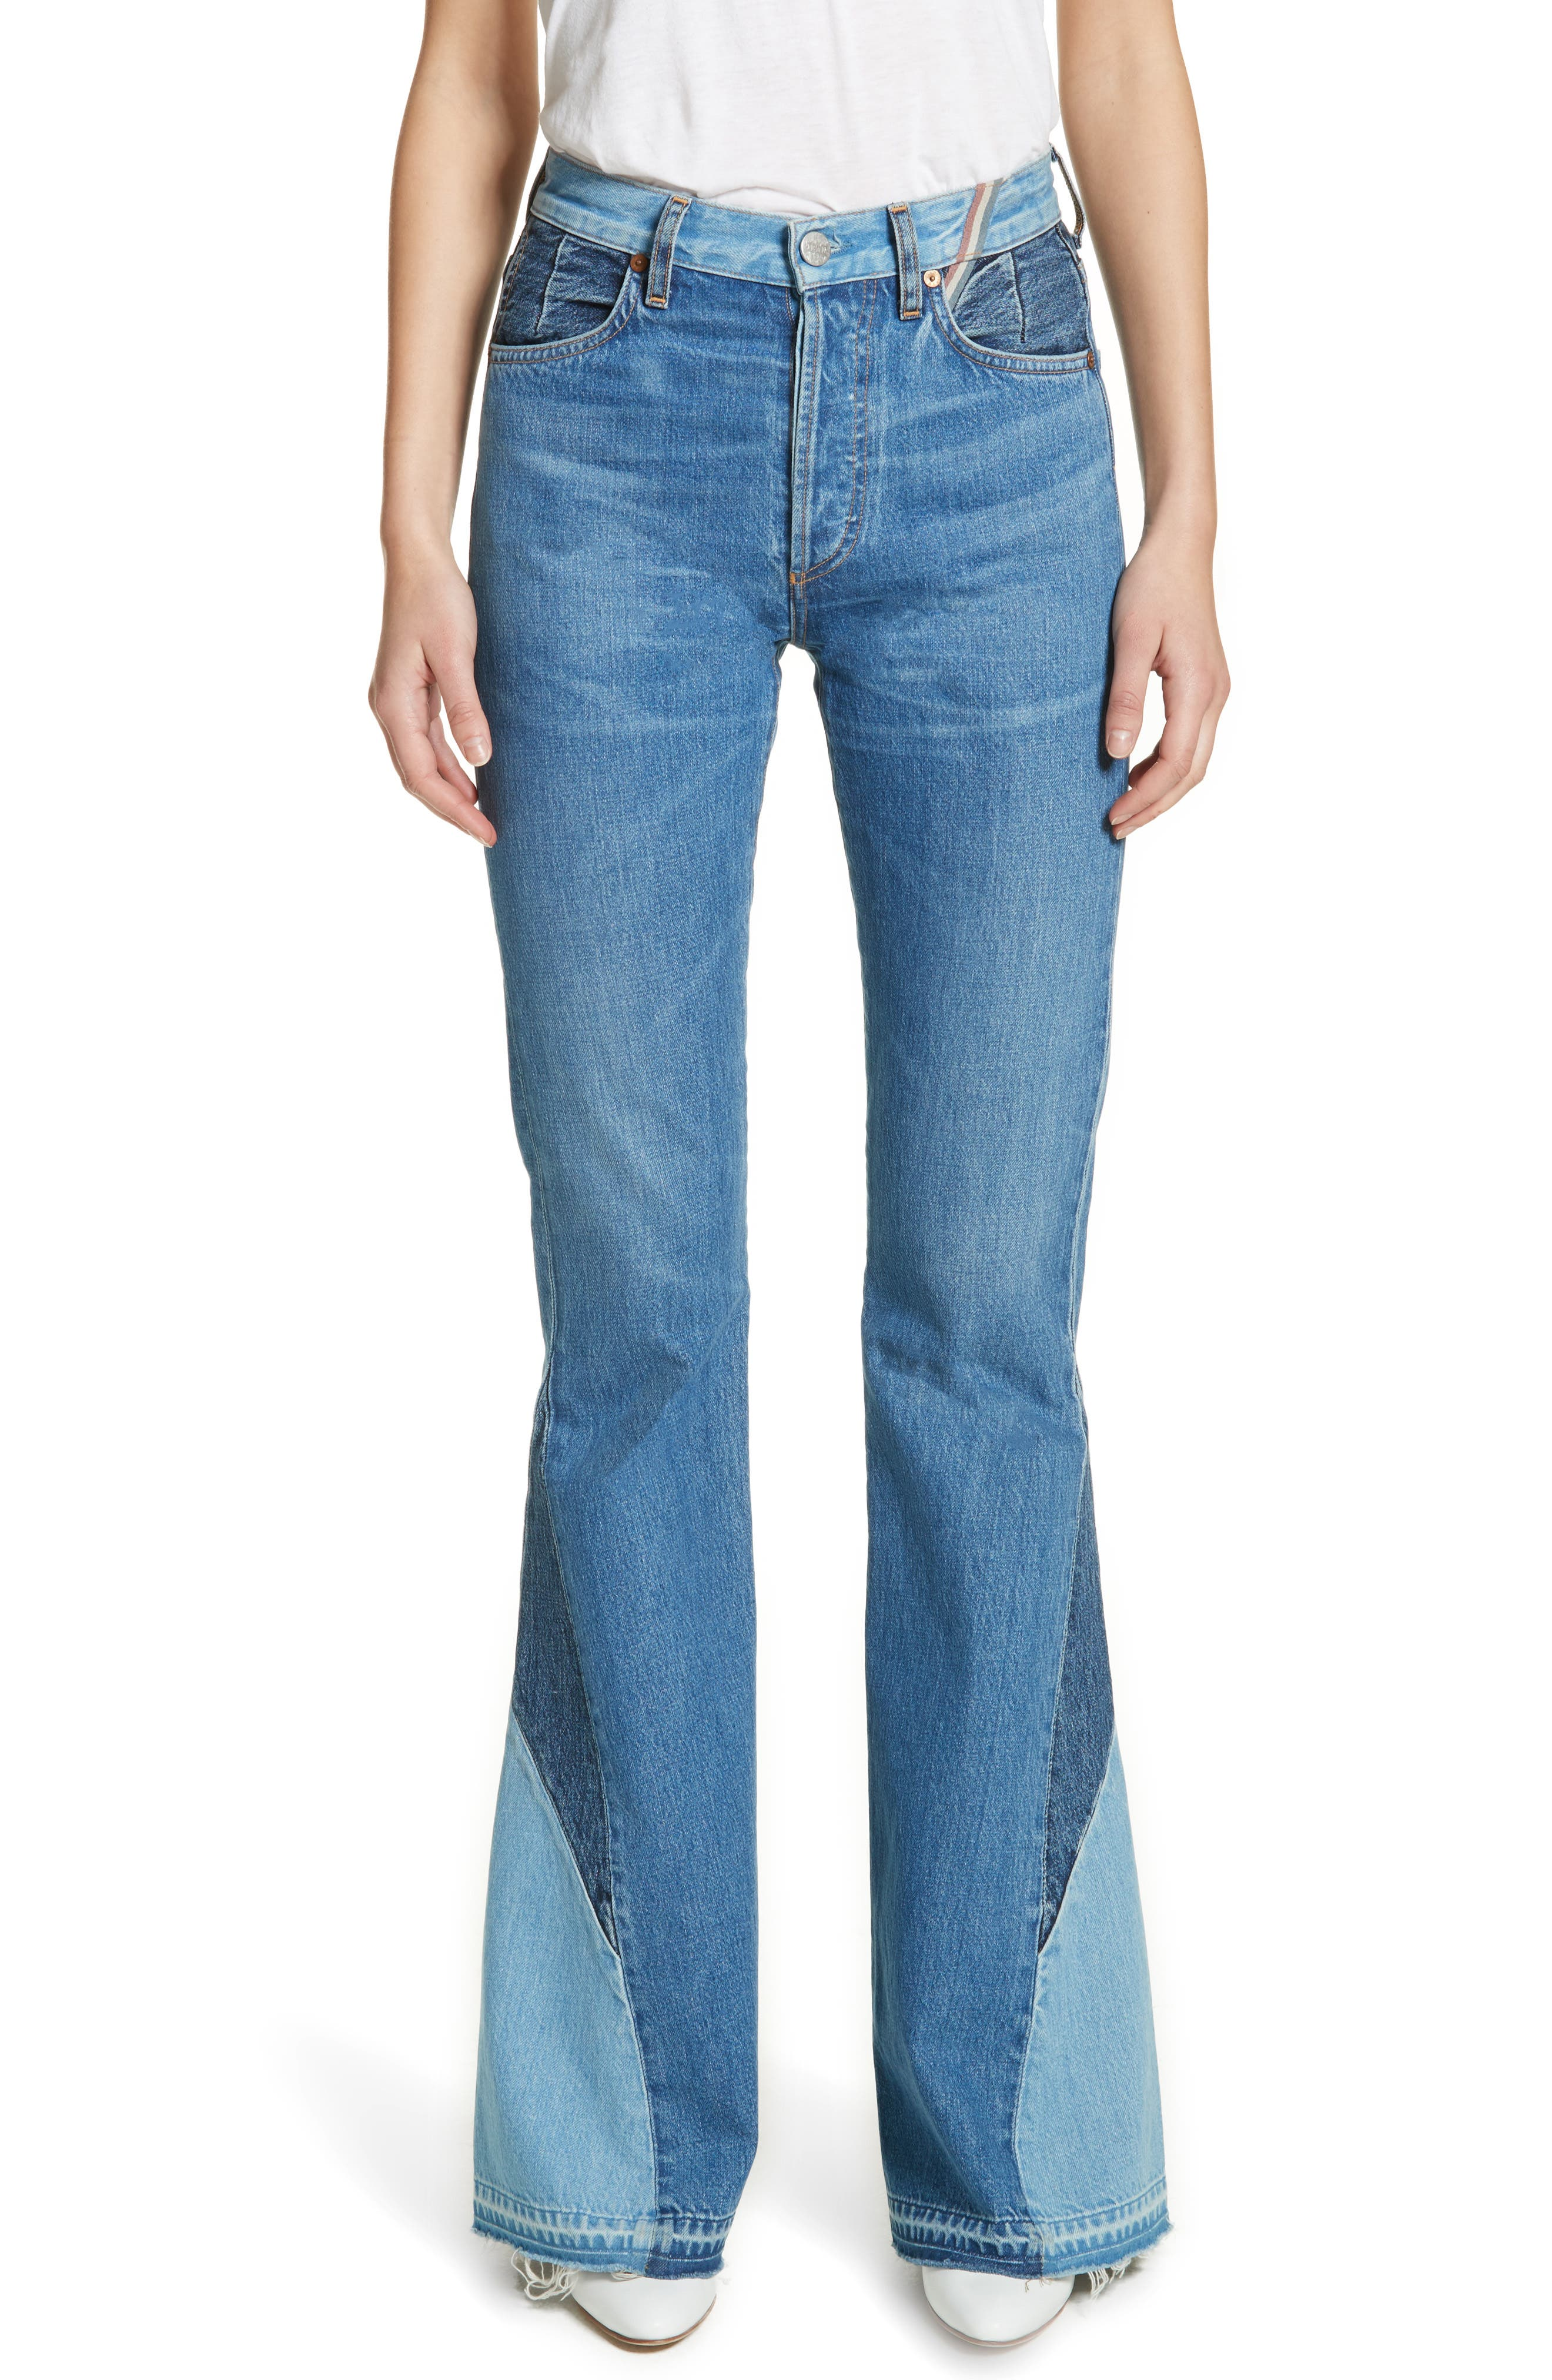 Janis High Rise Flare Jeans,                         Main,                         color, JAGGER